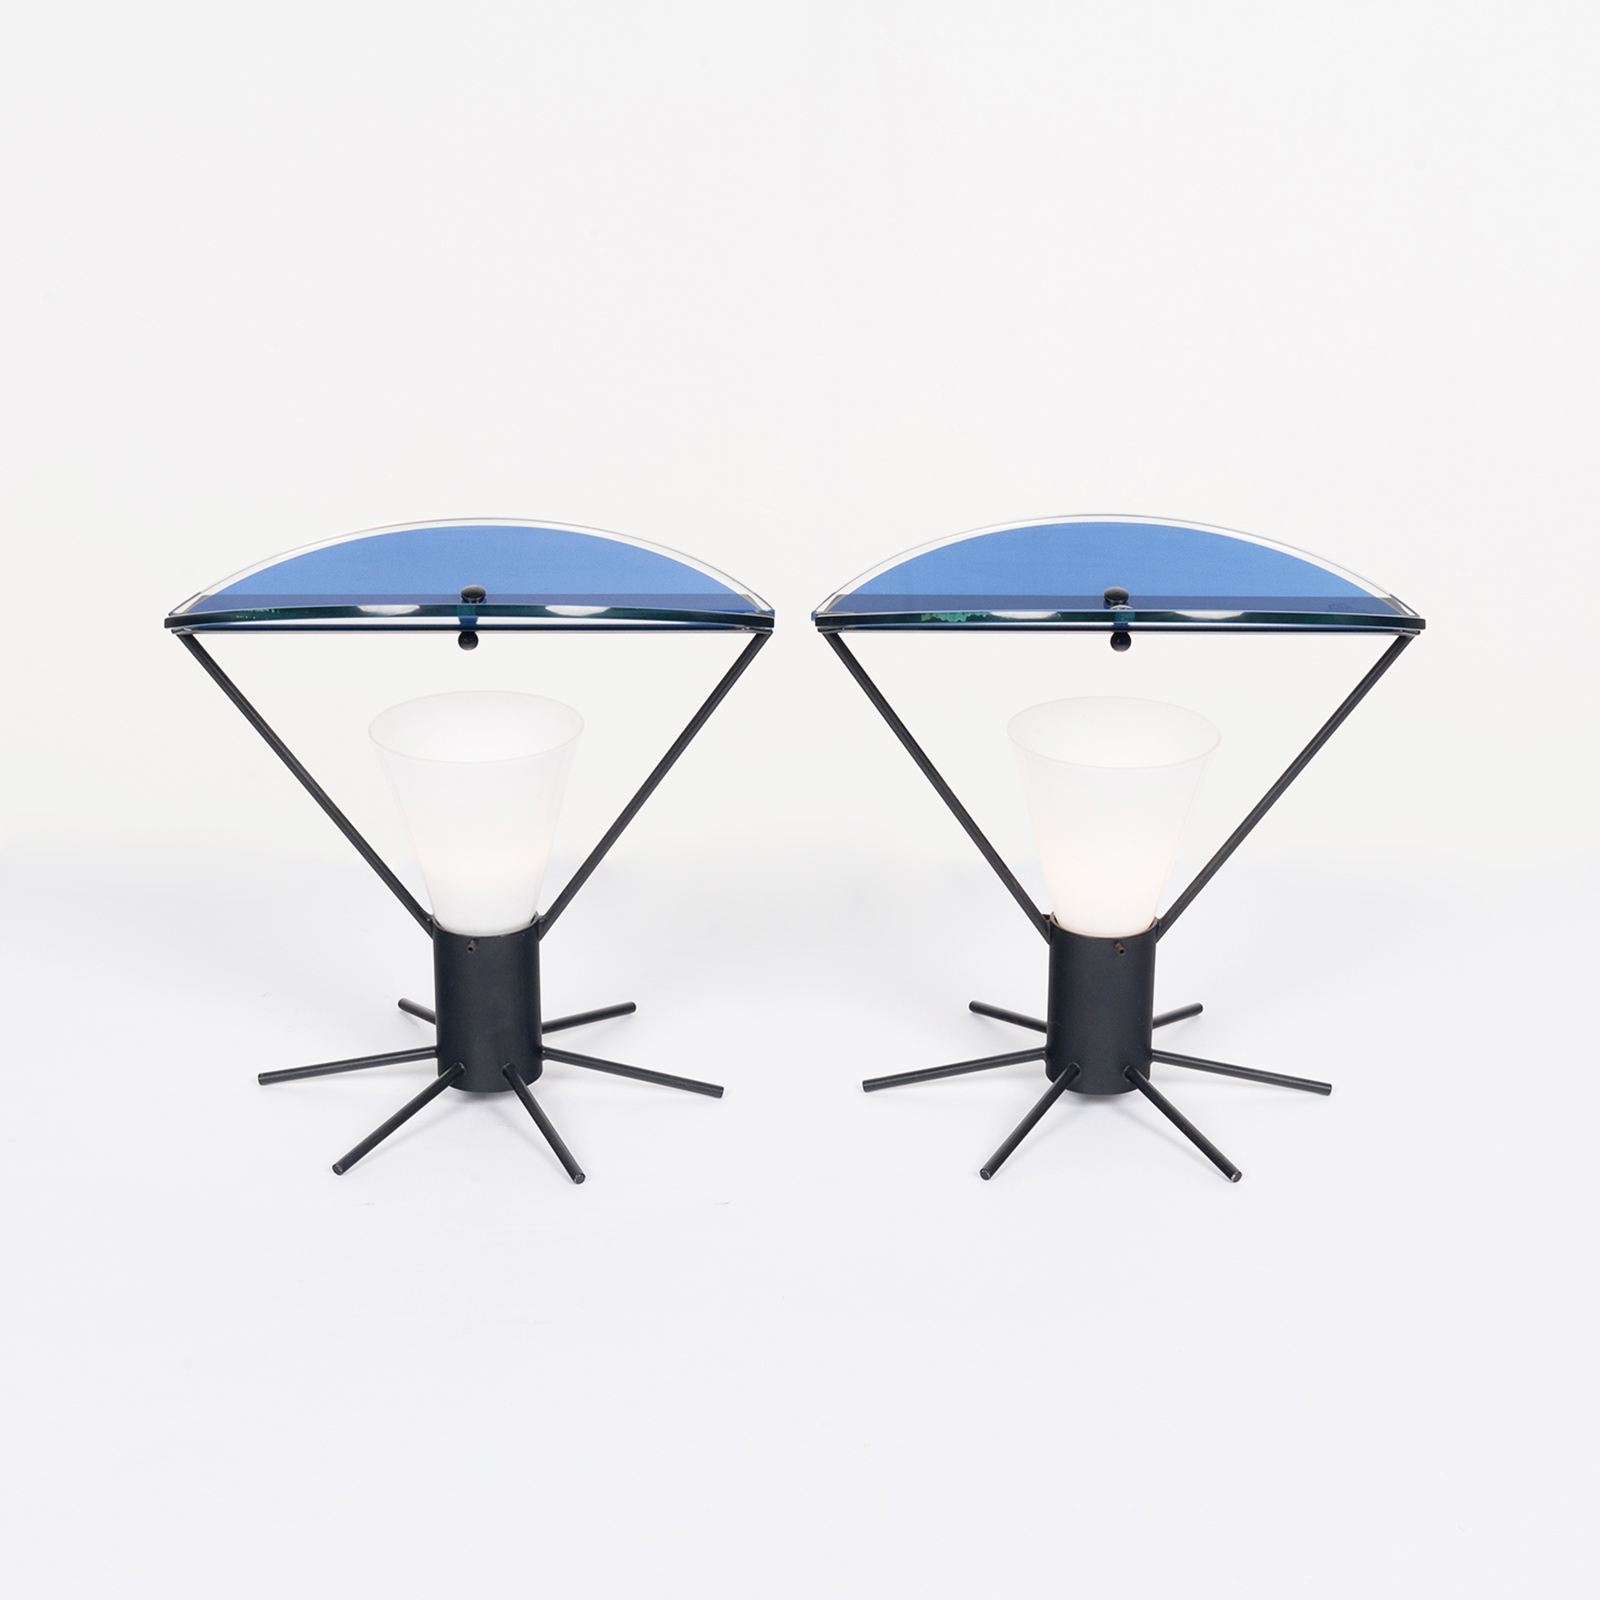 Pair Of Memphis Style Table Lamps In Murano Glass, 1980s, Italy Hero